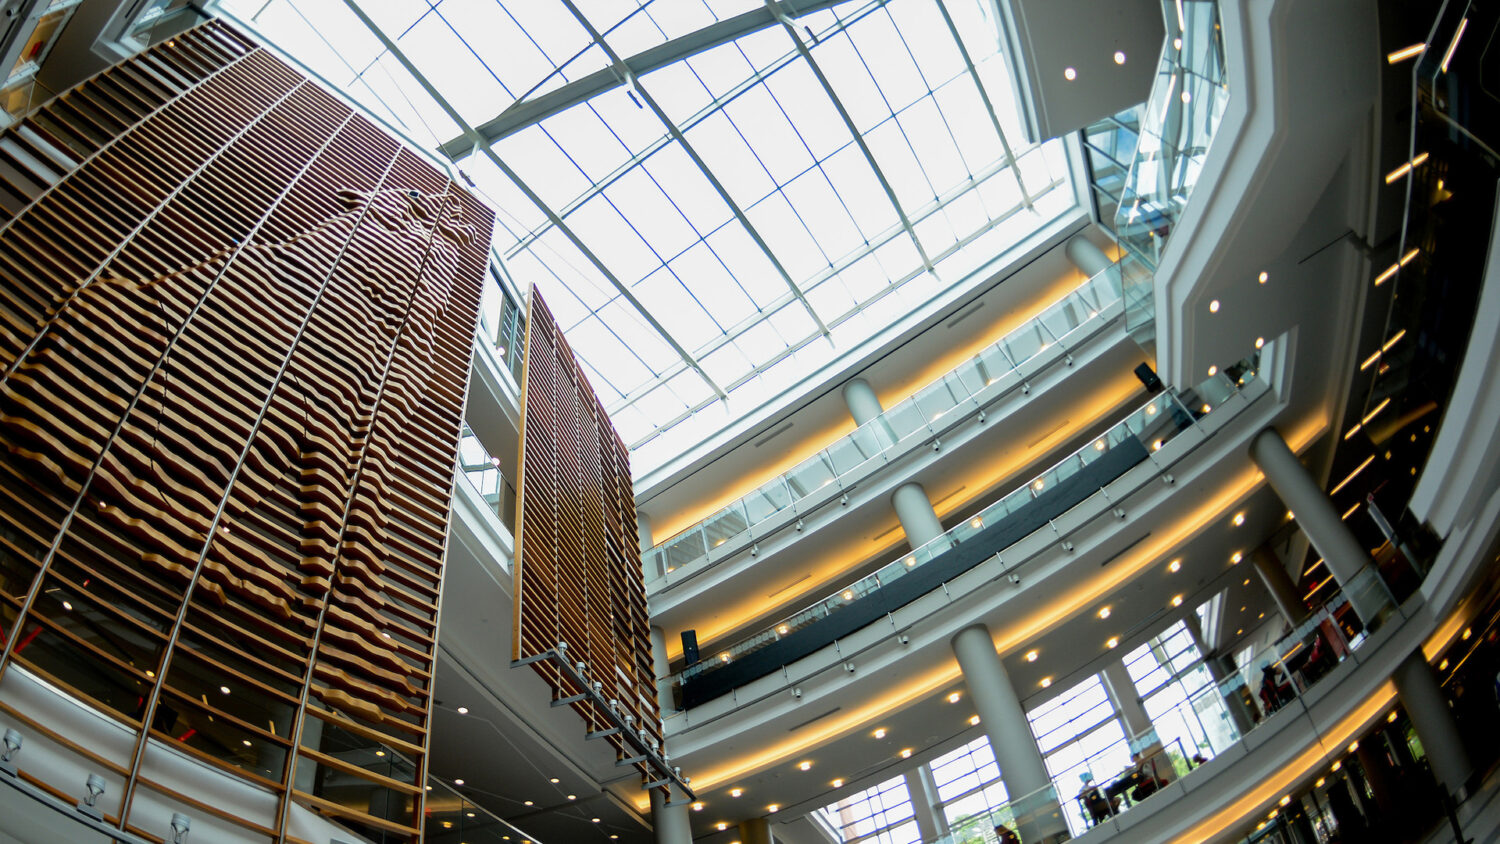 A view from the first floor lobby of Talley Student Union looking up.